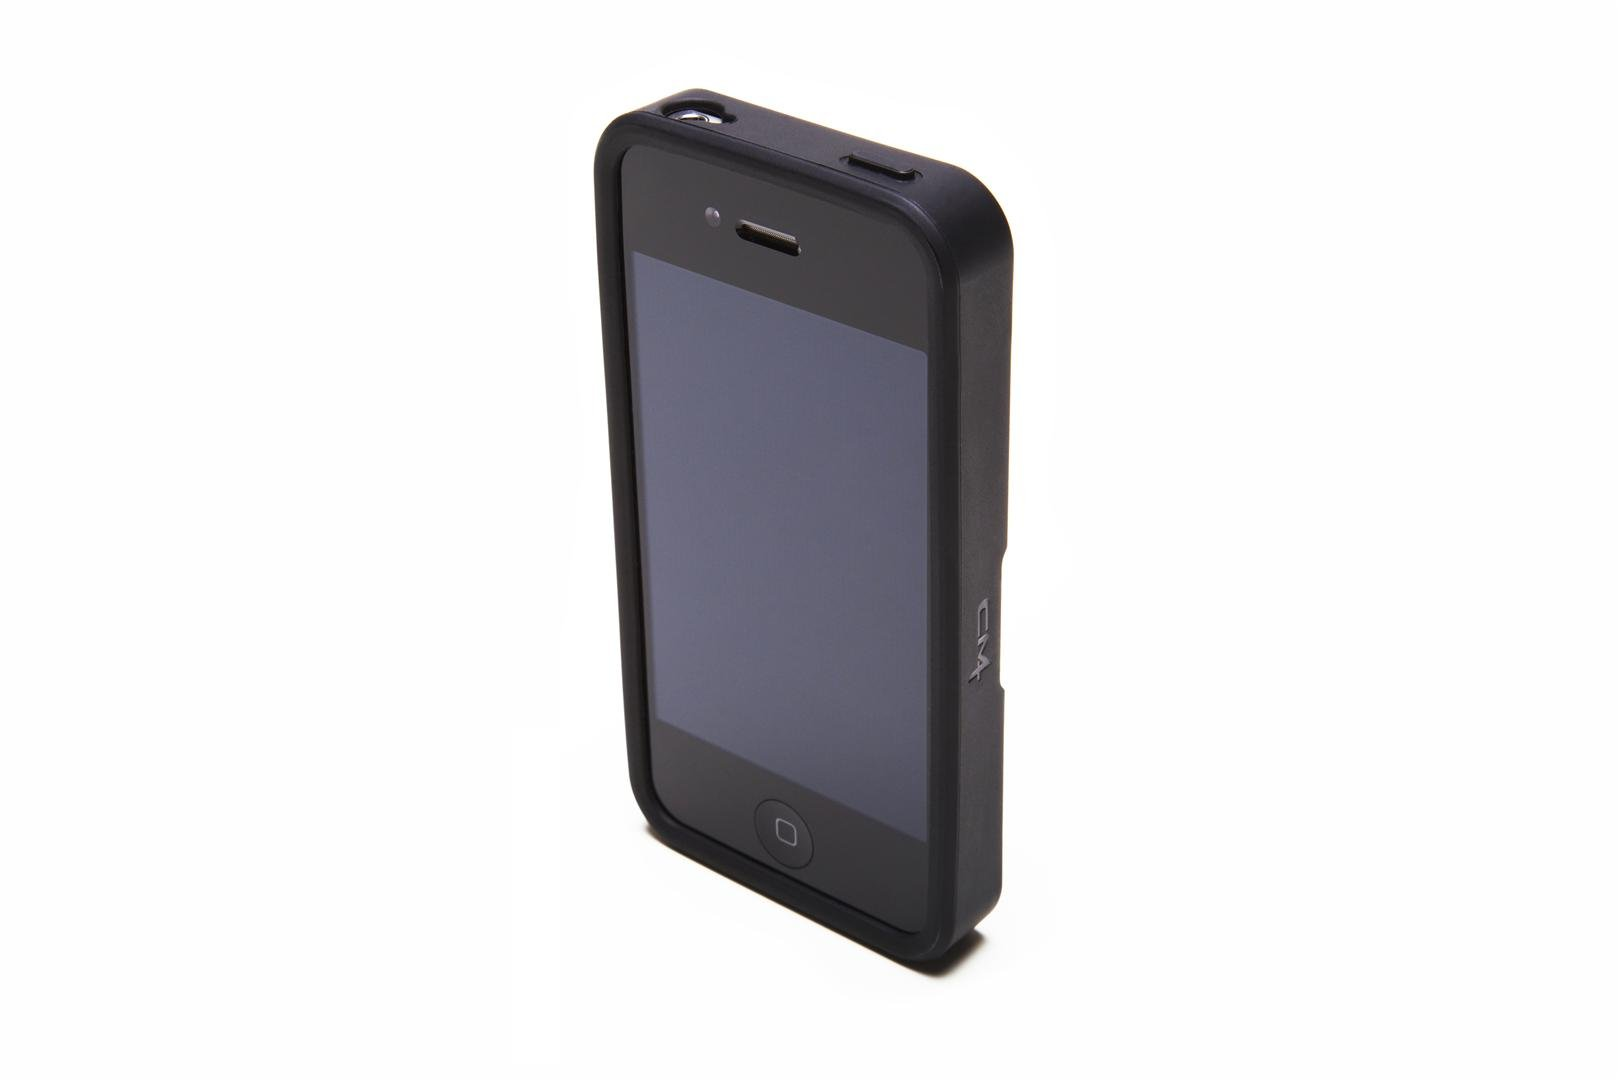 Silk iPhone 4/4S Wallet Case - Q CARD CASE [Slim Protective CM4 Cover] - Black Onyx by Silk (Image #5)